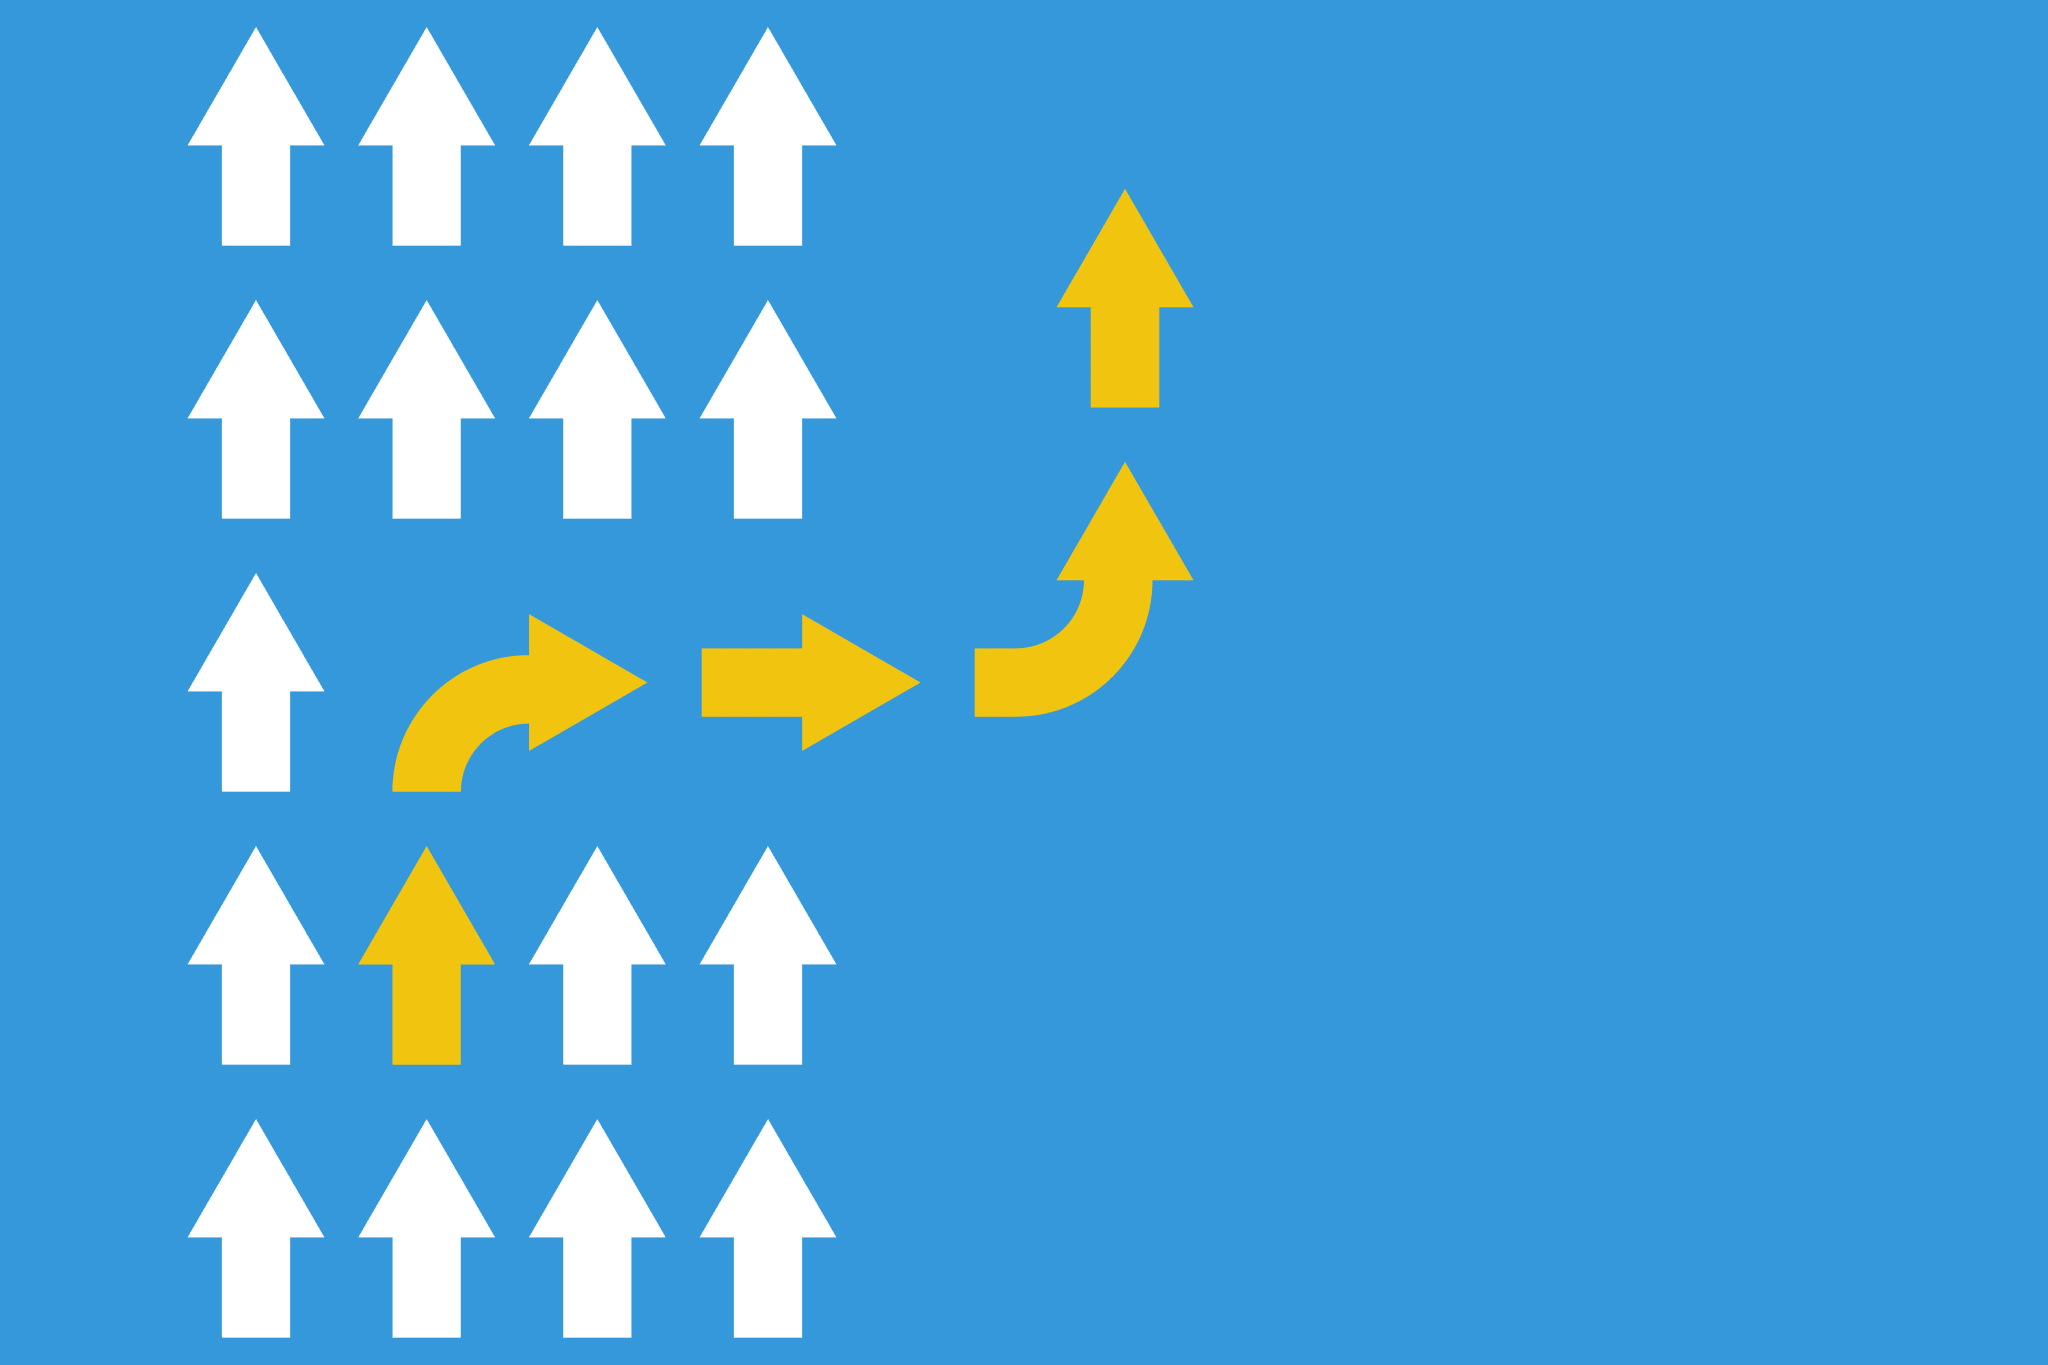 white arrows group in one direction and yellow arrow with different way, business innovations or new strategy vector concept